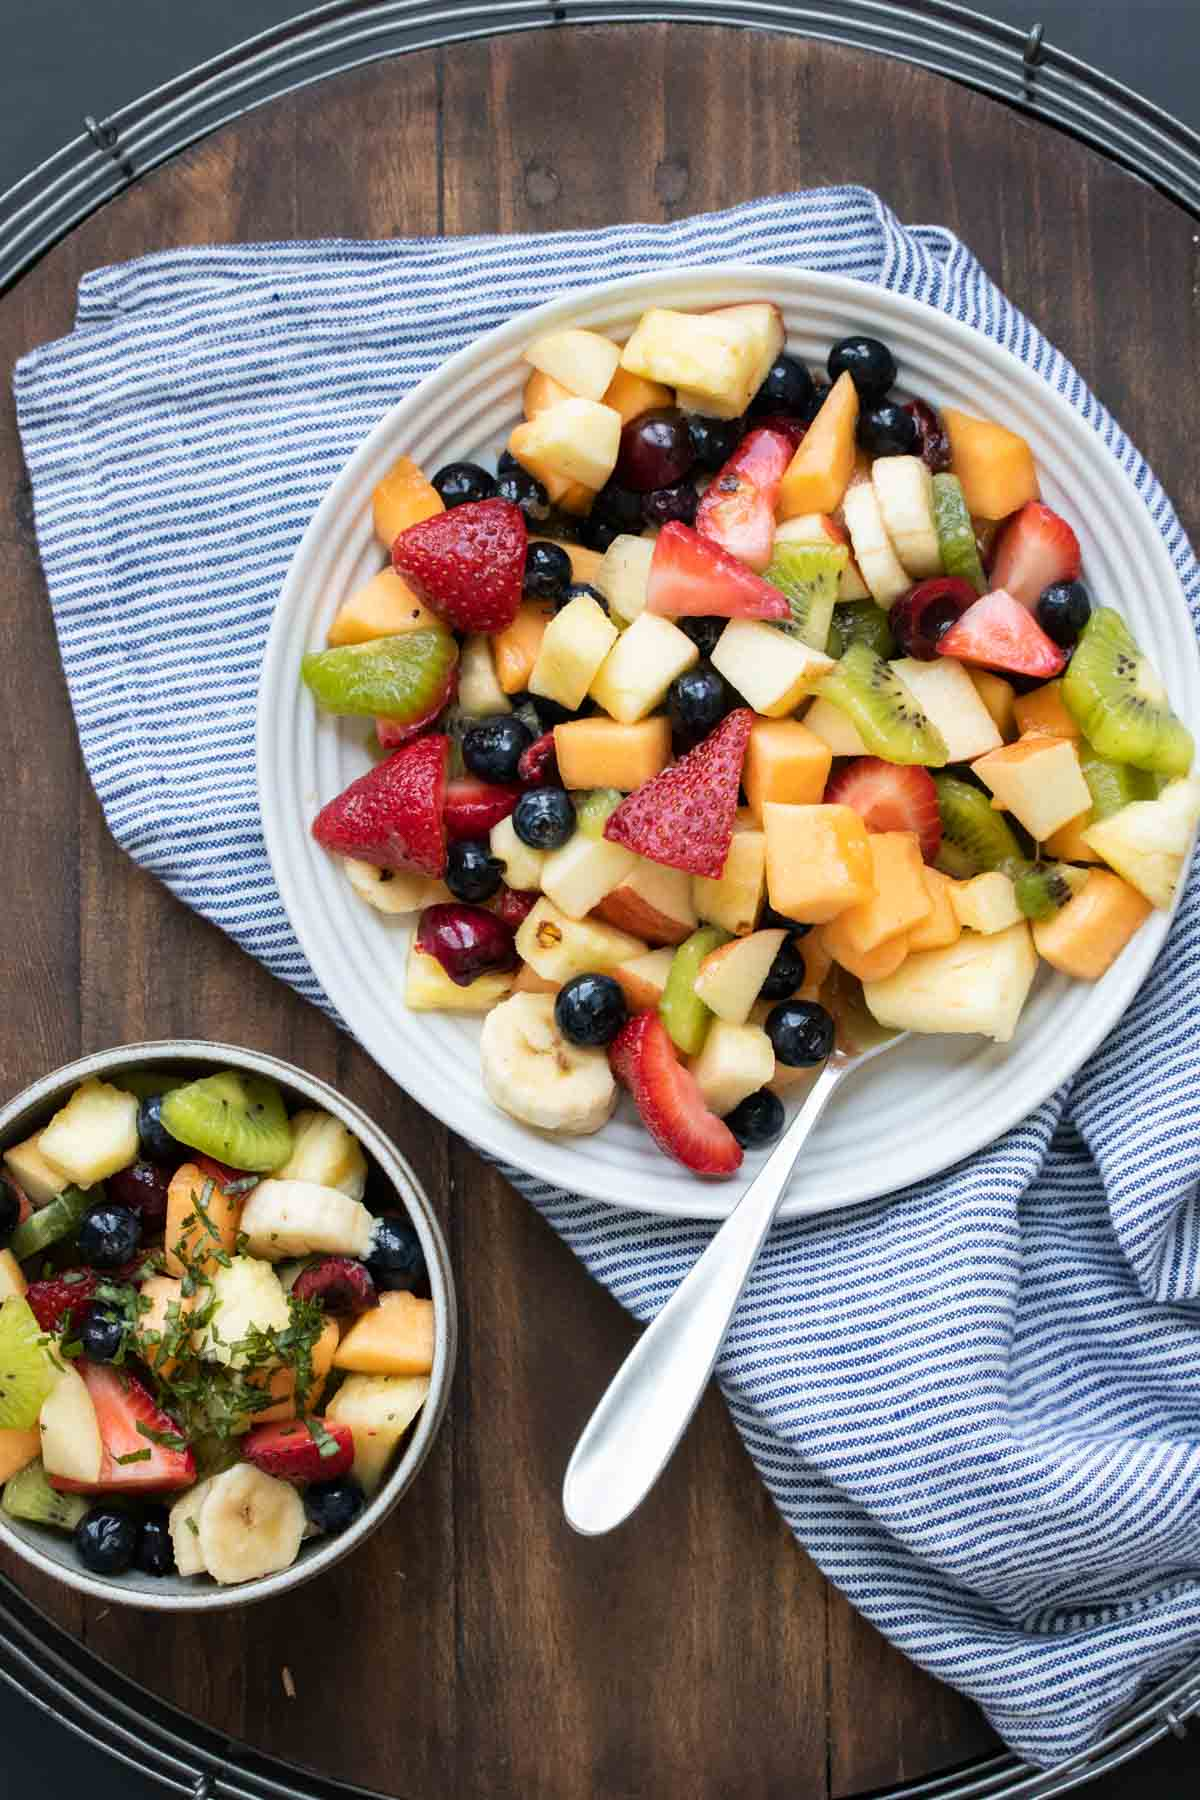 Fruit salad in a bowl next to a plate of it